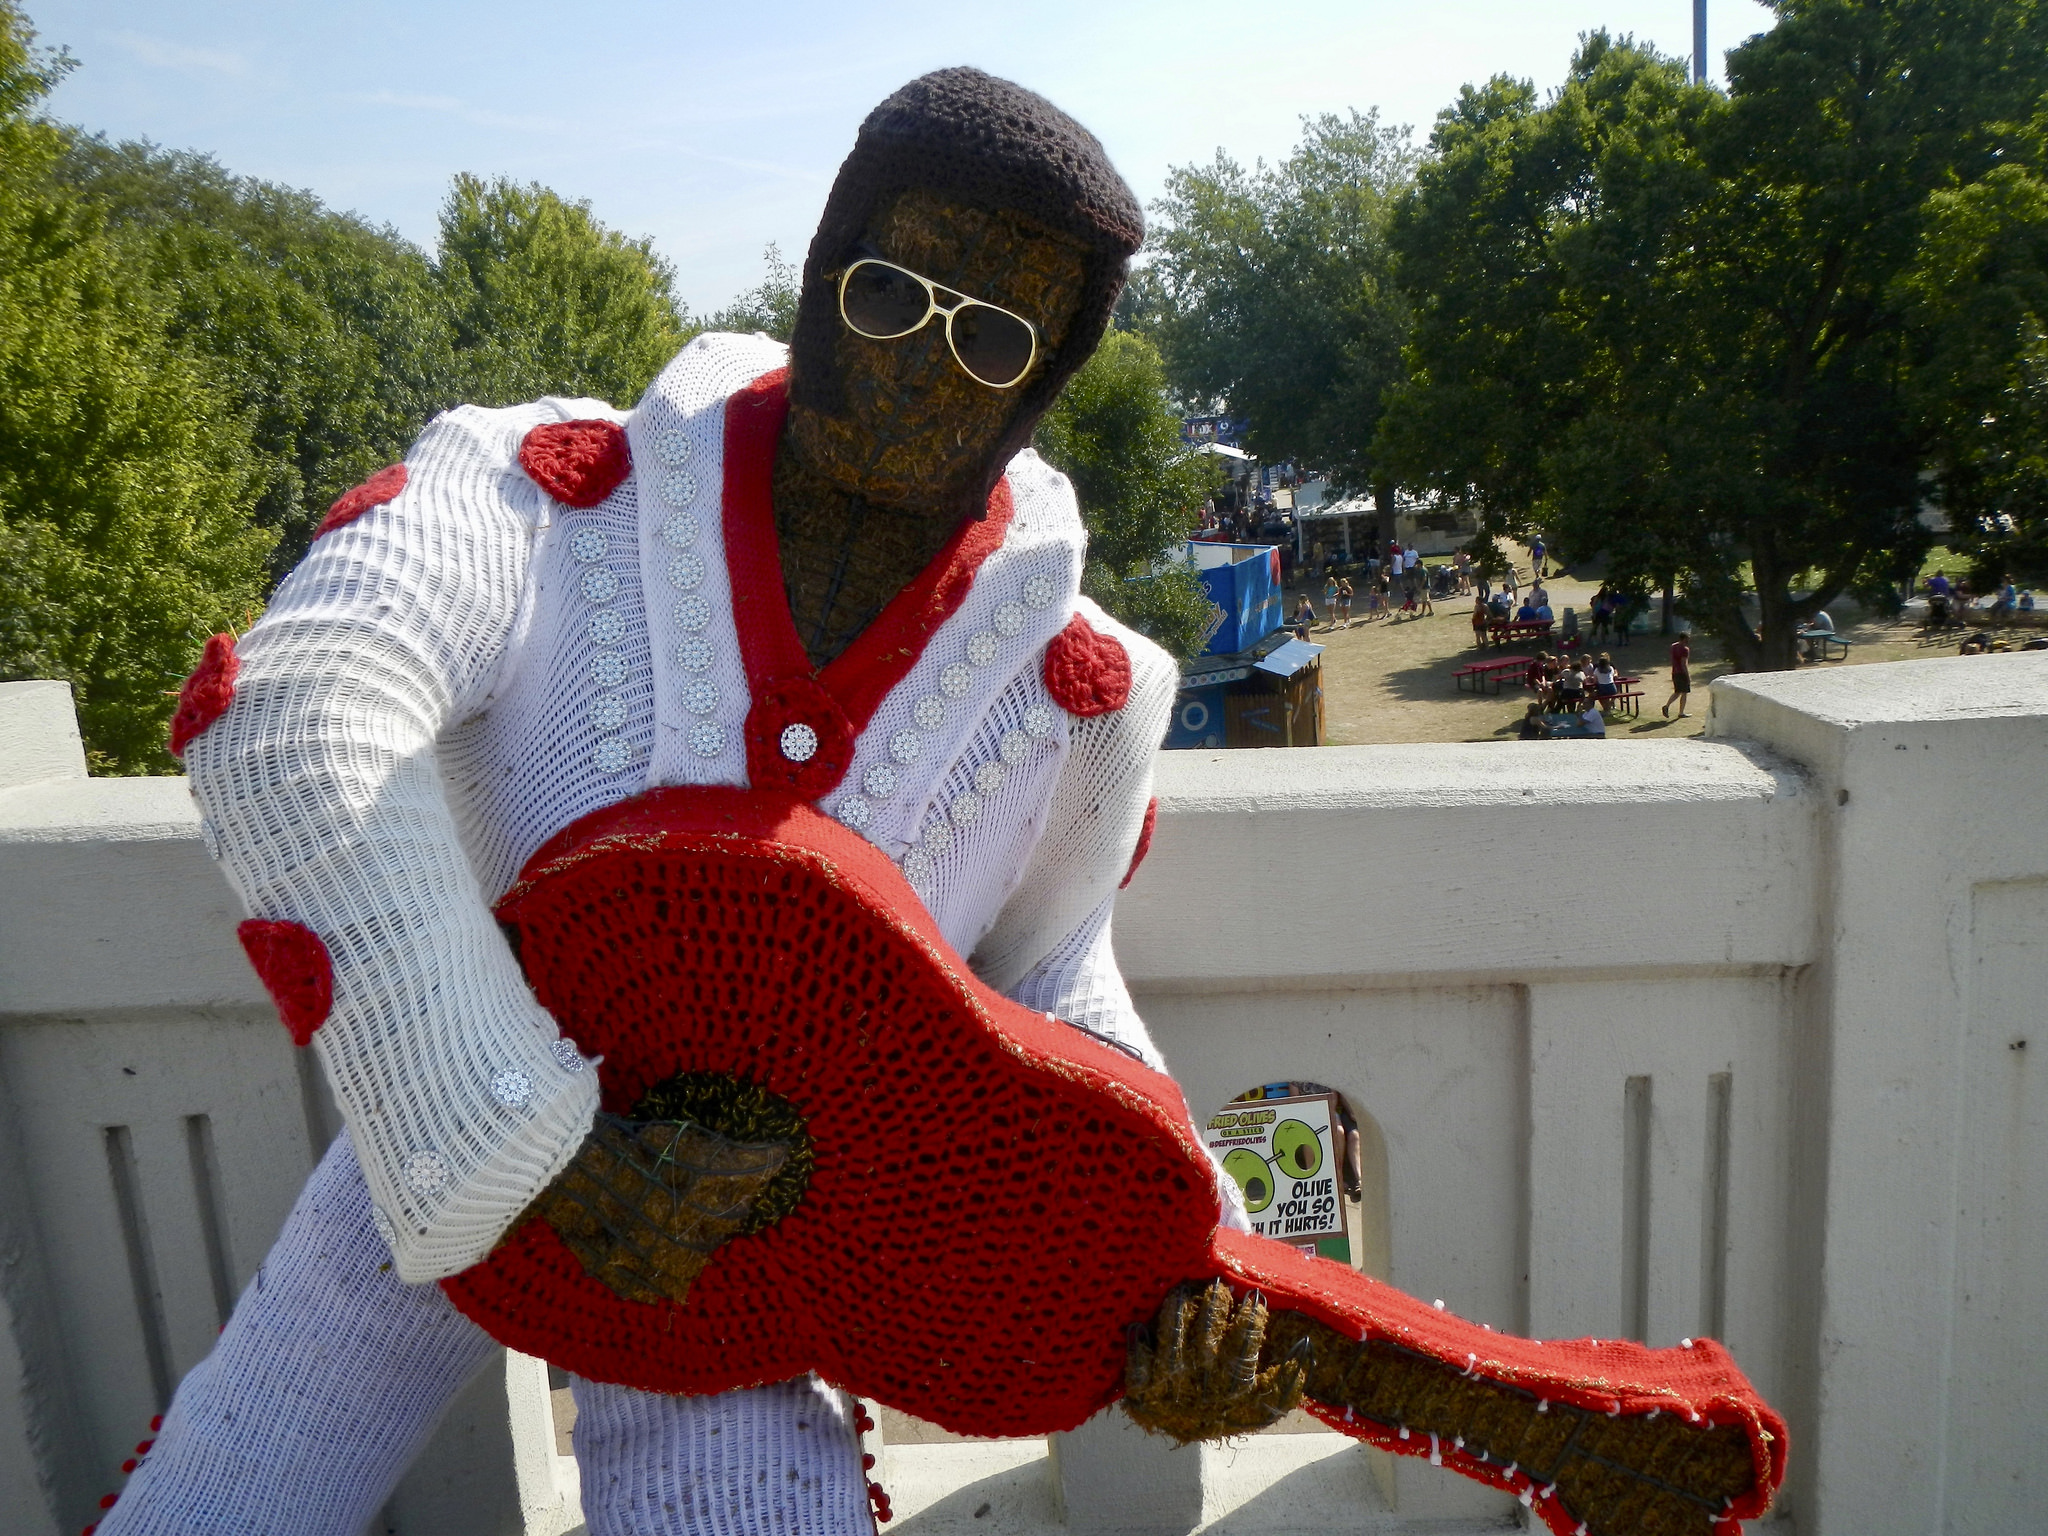 All Knit Up: Elvis Presley Yarn Bomb Spotted at the Minnesota State Fair